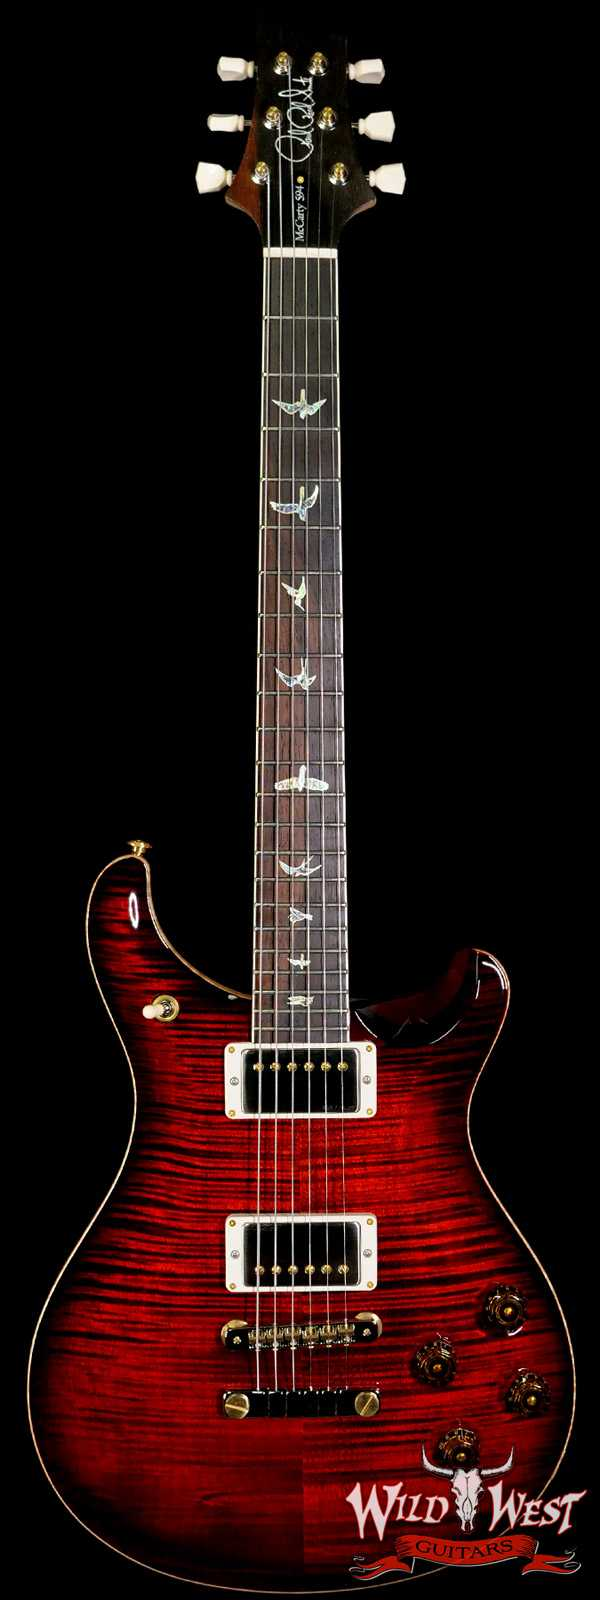 Paul Reed Smith PRS 2020 Experience 10 Top McCarty 594 Flame Maple Neck Brazillian Rosewood Board Black Cherry